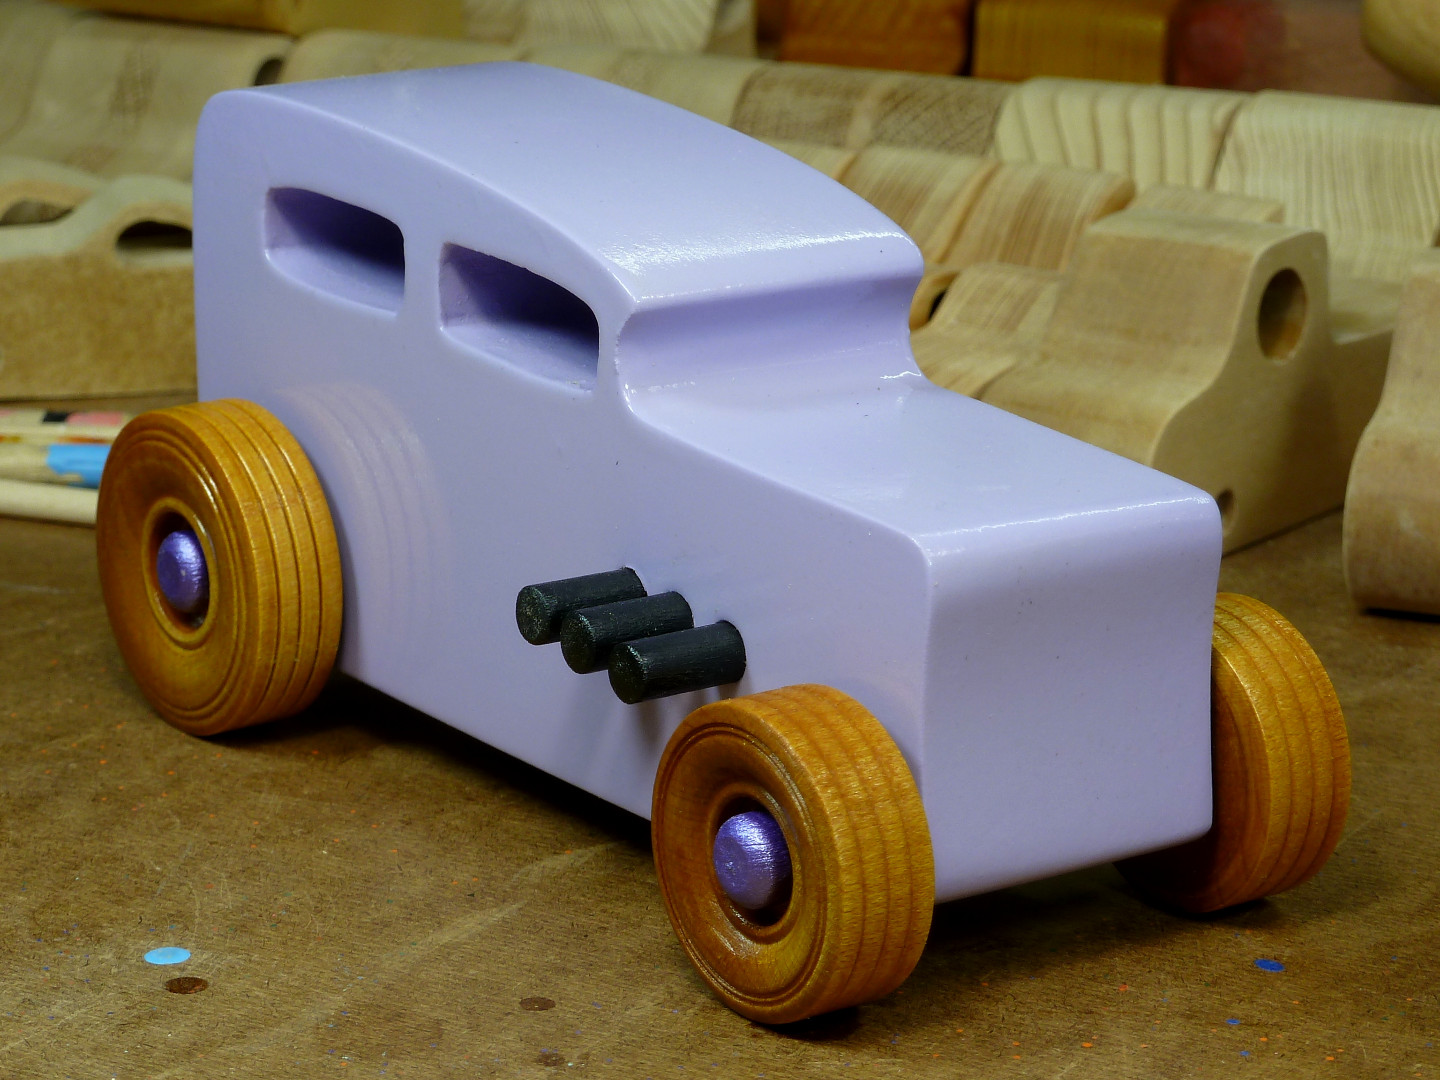 20170522-185805 Wooden Toy Car - Hot Rod Freaky Ford - 32 Sedan - MDF - Lavender - Amber Shellac - Metallic Purple 02.jpg